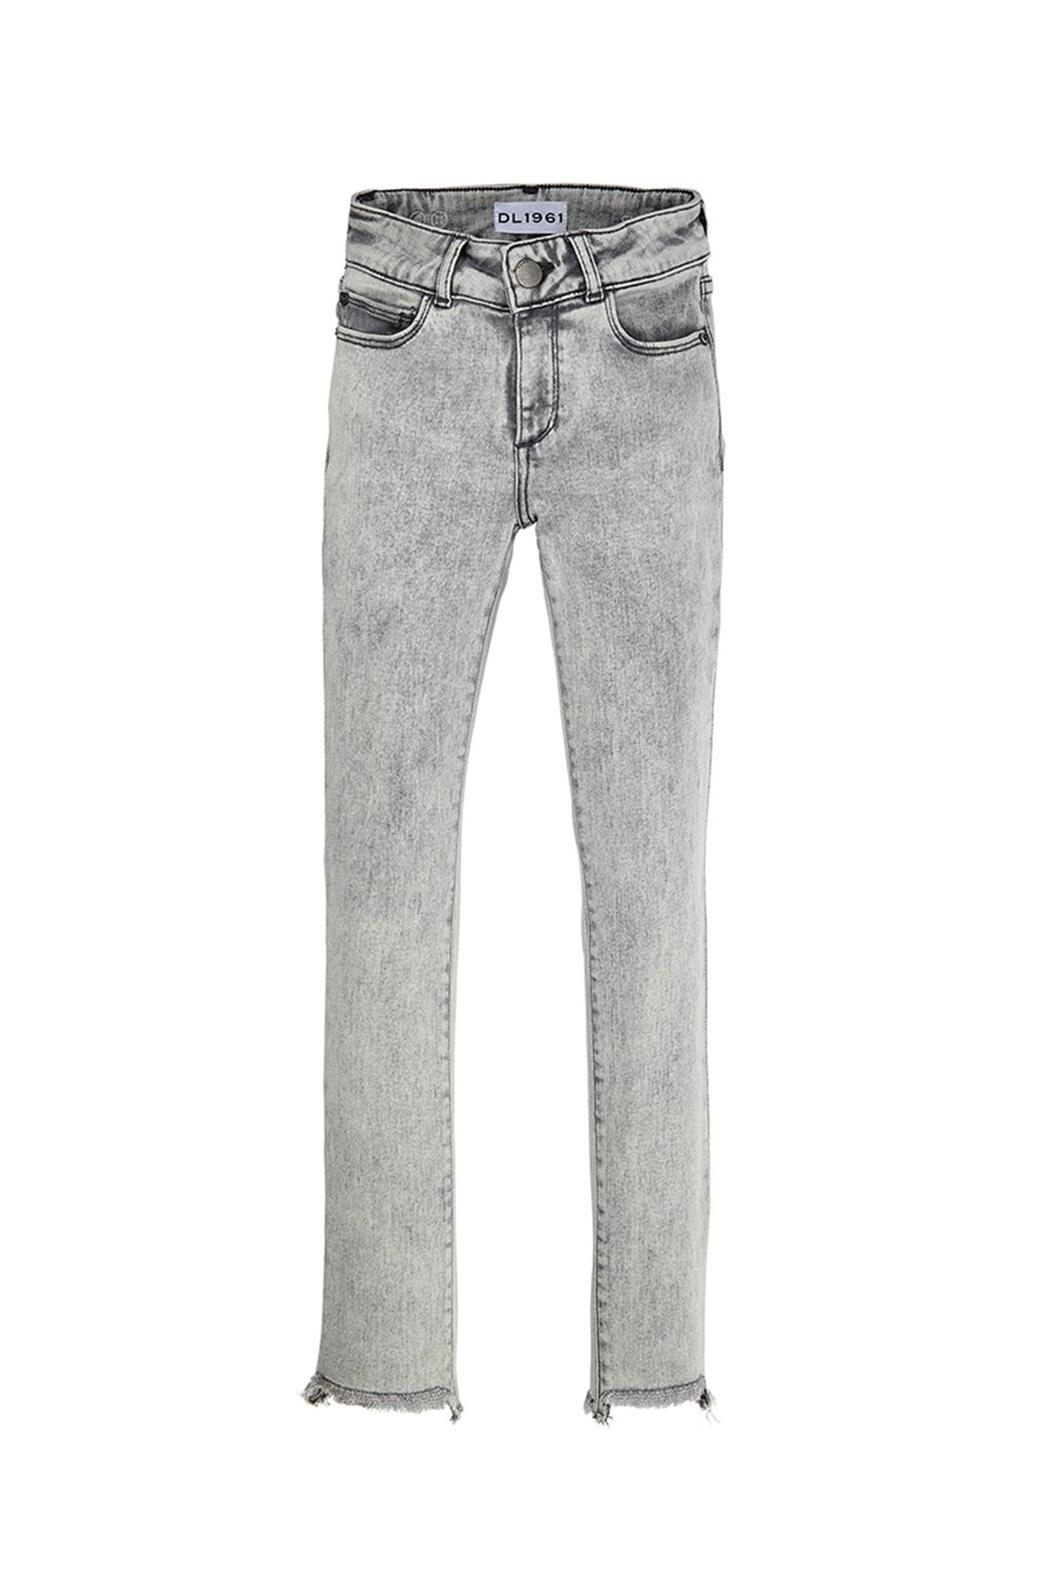 DL 1961 Chloe Gemini Jeans - Front Cropped Image